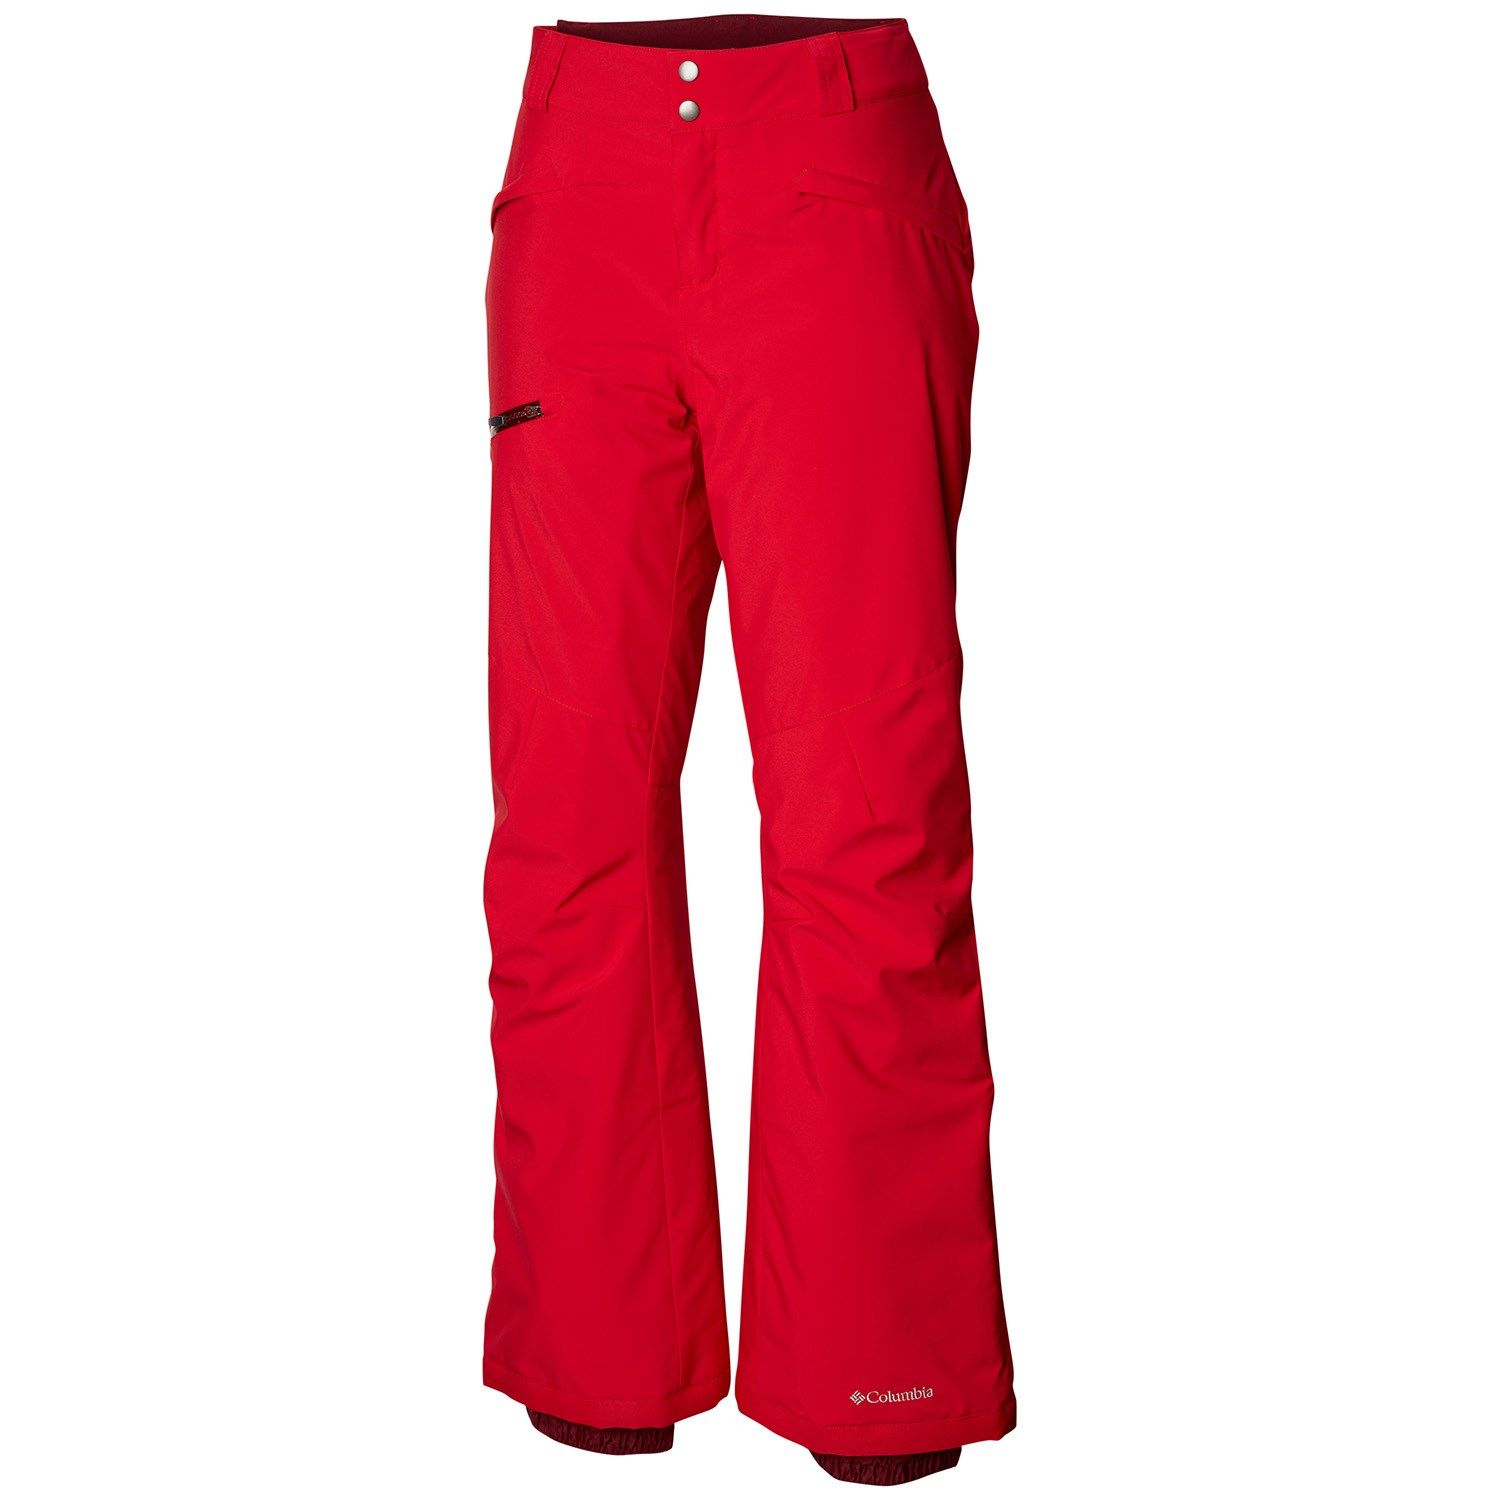 Columbia Wildside Pants Women's | Snowboarding outfit